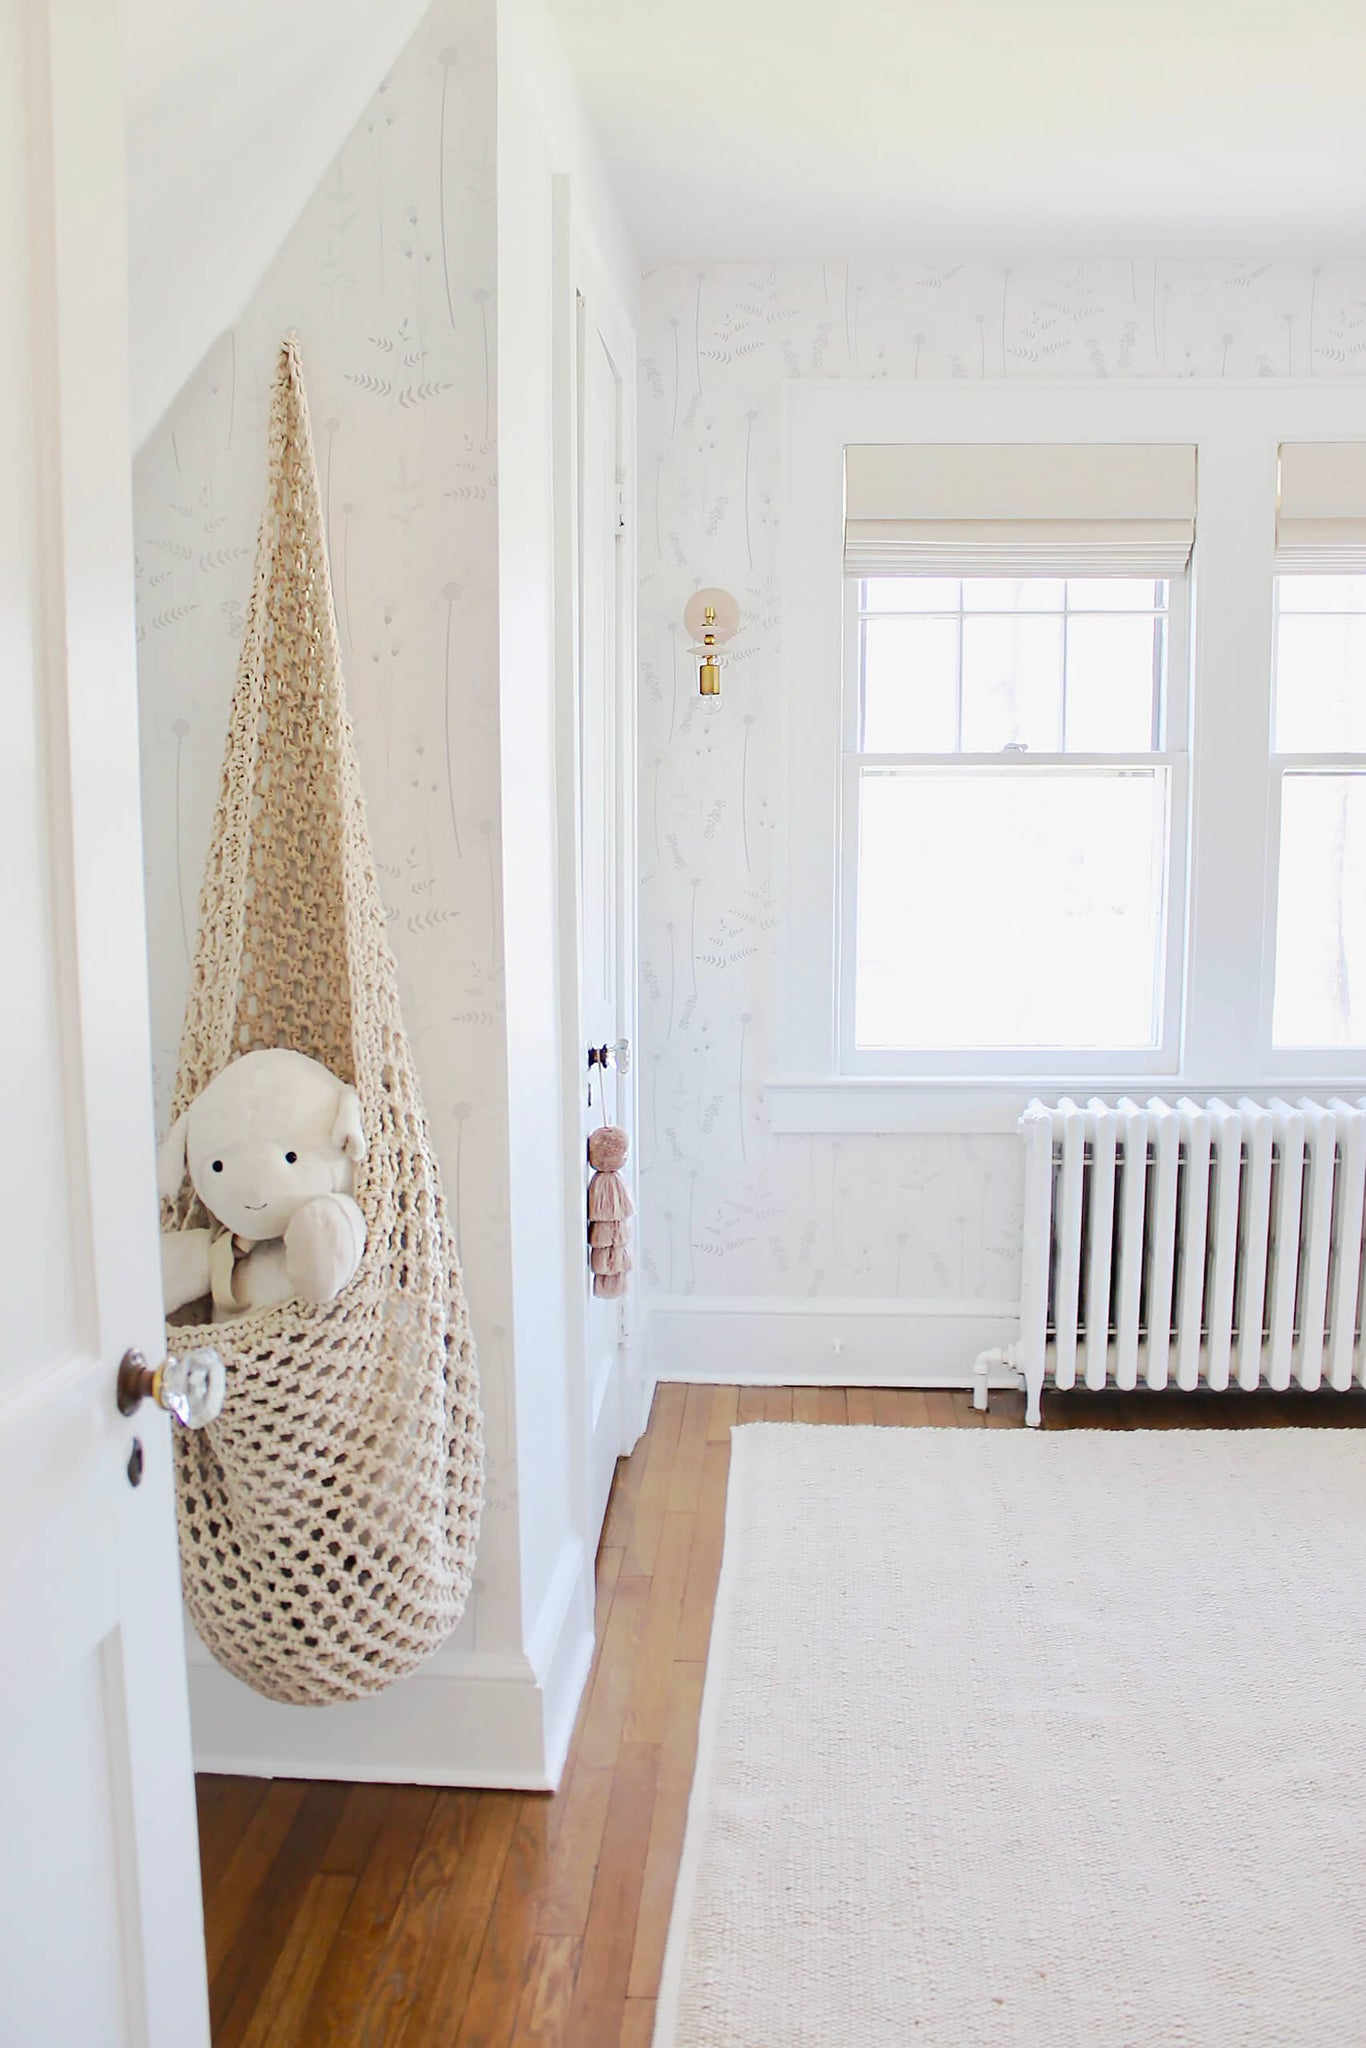 All white attic nursery interior with grey wildflower floral removable wallpaper and pink tassel decor